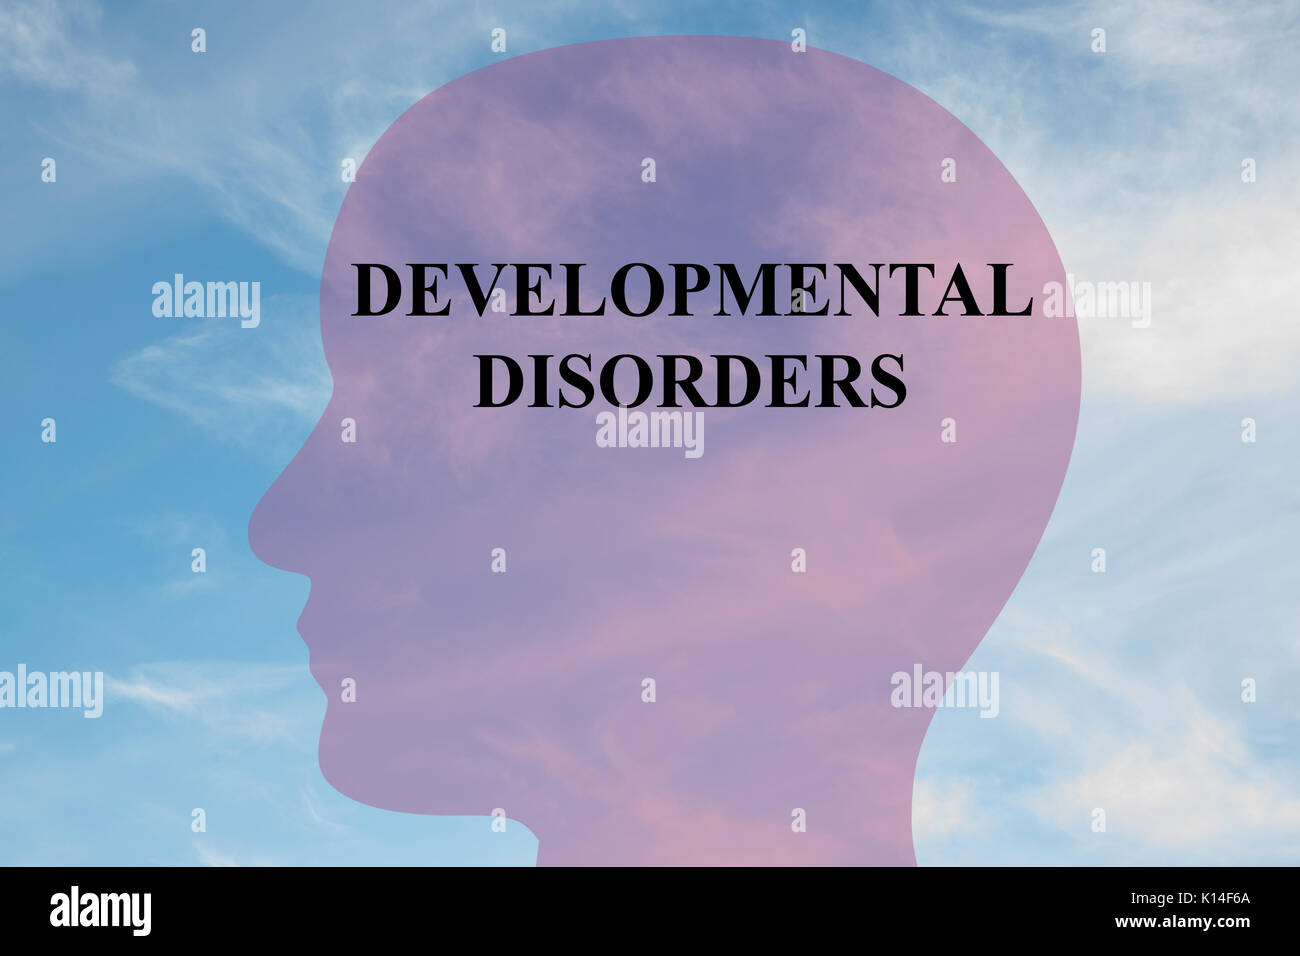 Render illustration of 'DEVELOPMENTAL DISORDERS' title on head silhouette, with cloudy sky as a background. - Stock Image